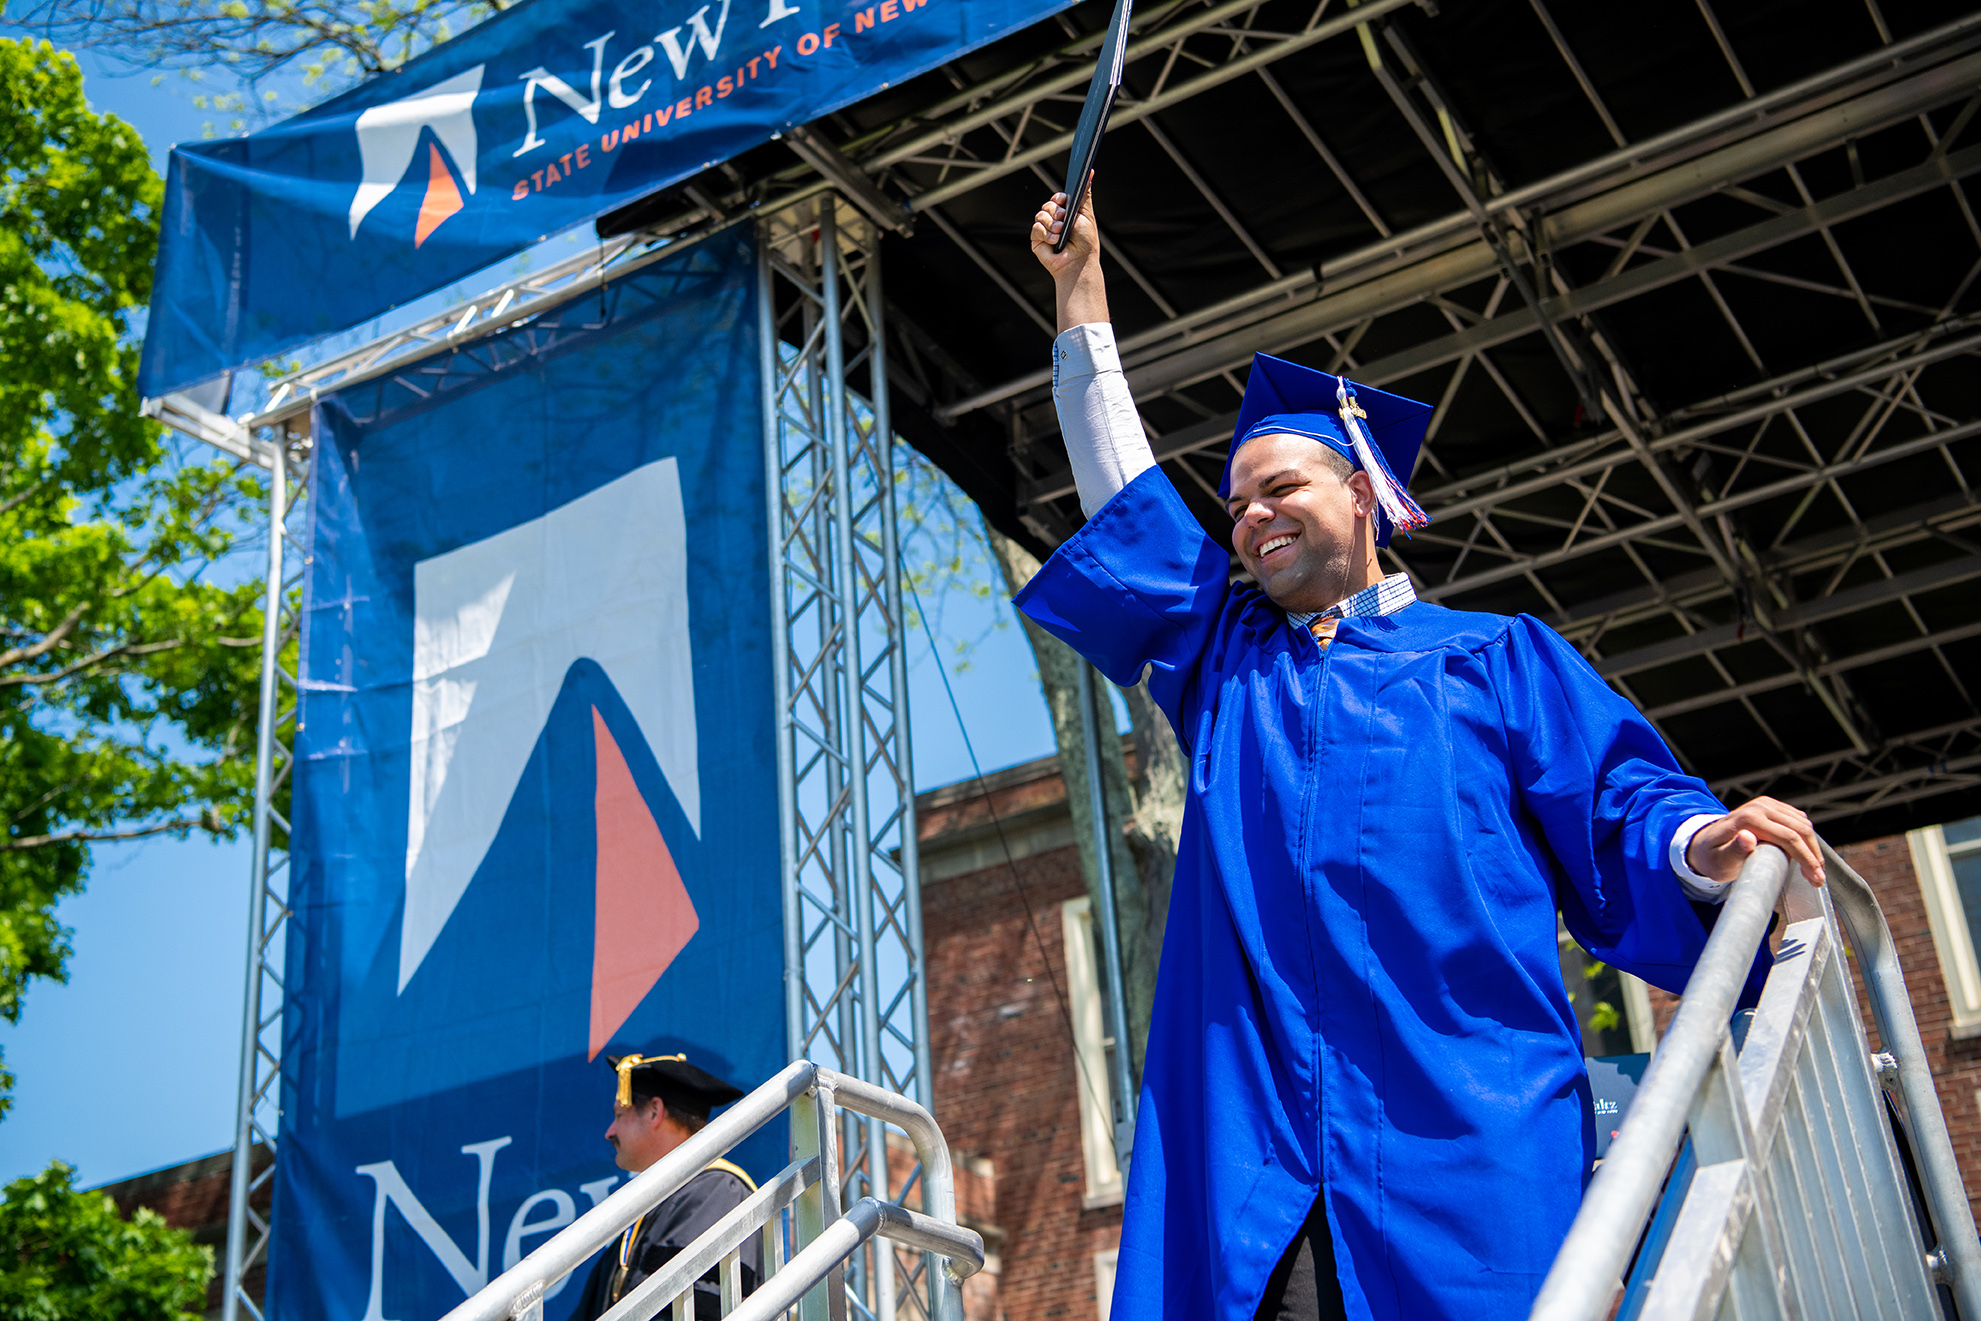 Suny New Paltz Academic Calendar Spring 2022.Commencement 2021 Update We Are Planning A Series Of Smaller In Person Ceremonies Plans Are Subject To Change Based On Covid 19 Numbers And Public Health Guidance Suny New Paltz News